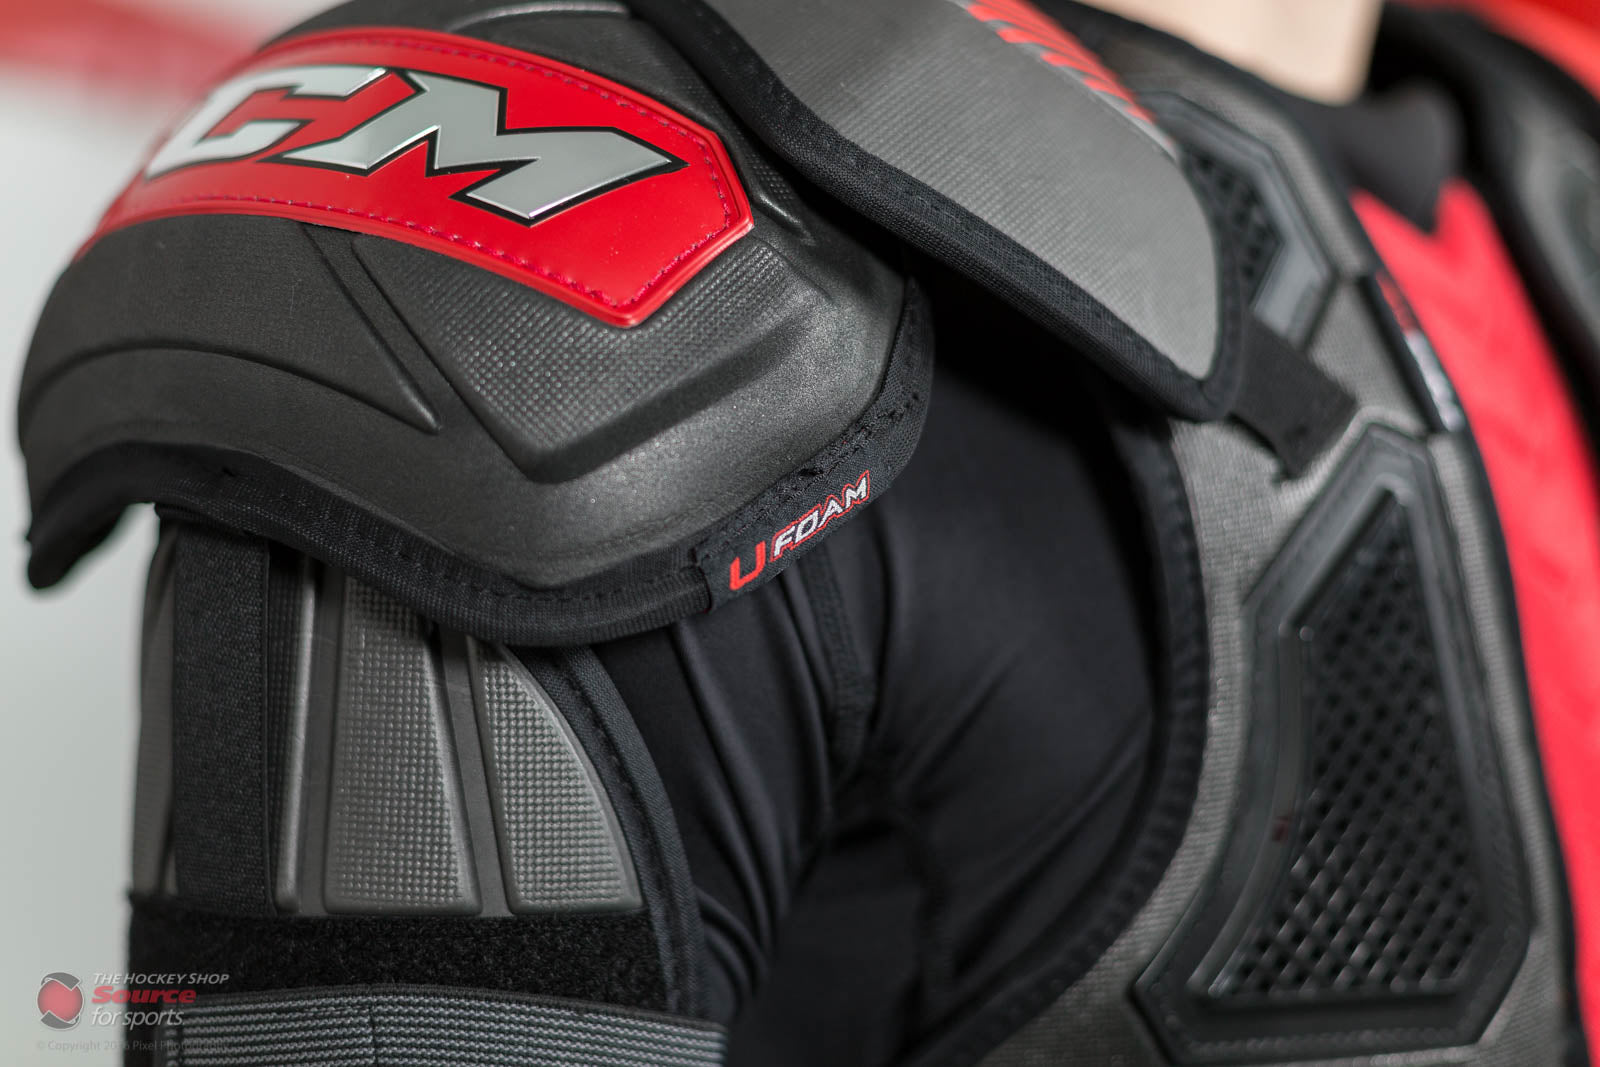 57b983e694d CCM QuickLite Shoulder Pads Review – The Hockey Shop Source For Sports